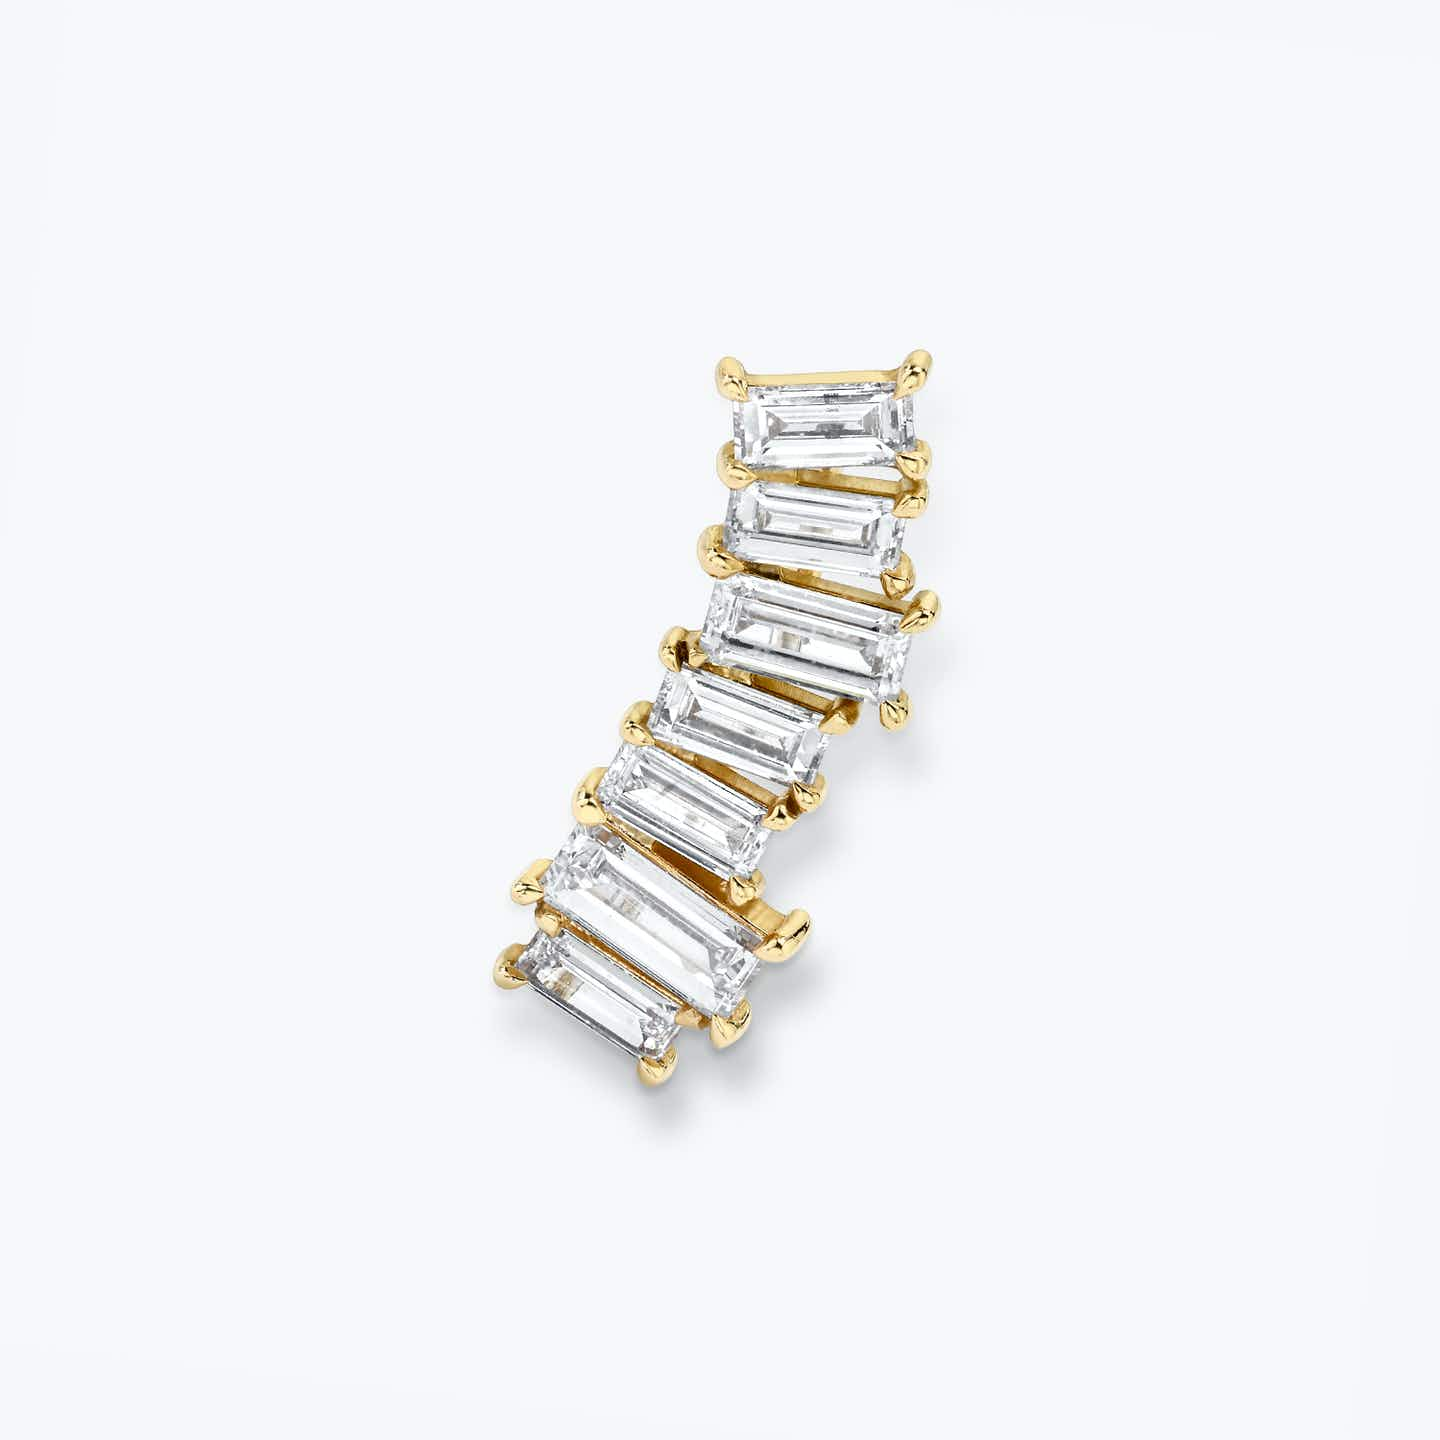 Ear arc made out of solid yellow gold and 7 baguette shaped diamonds